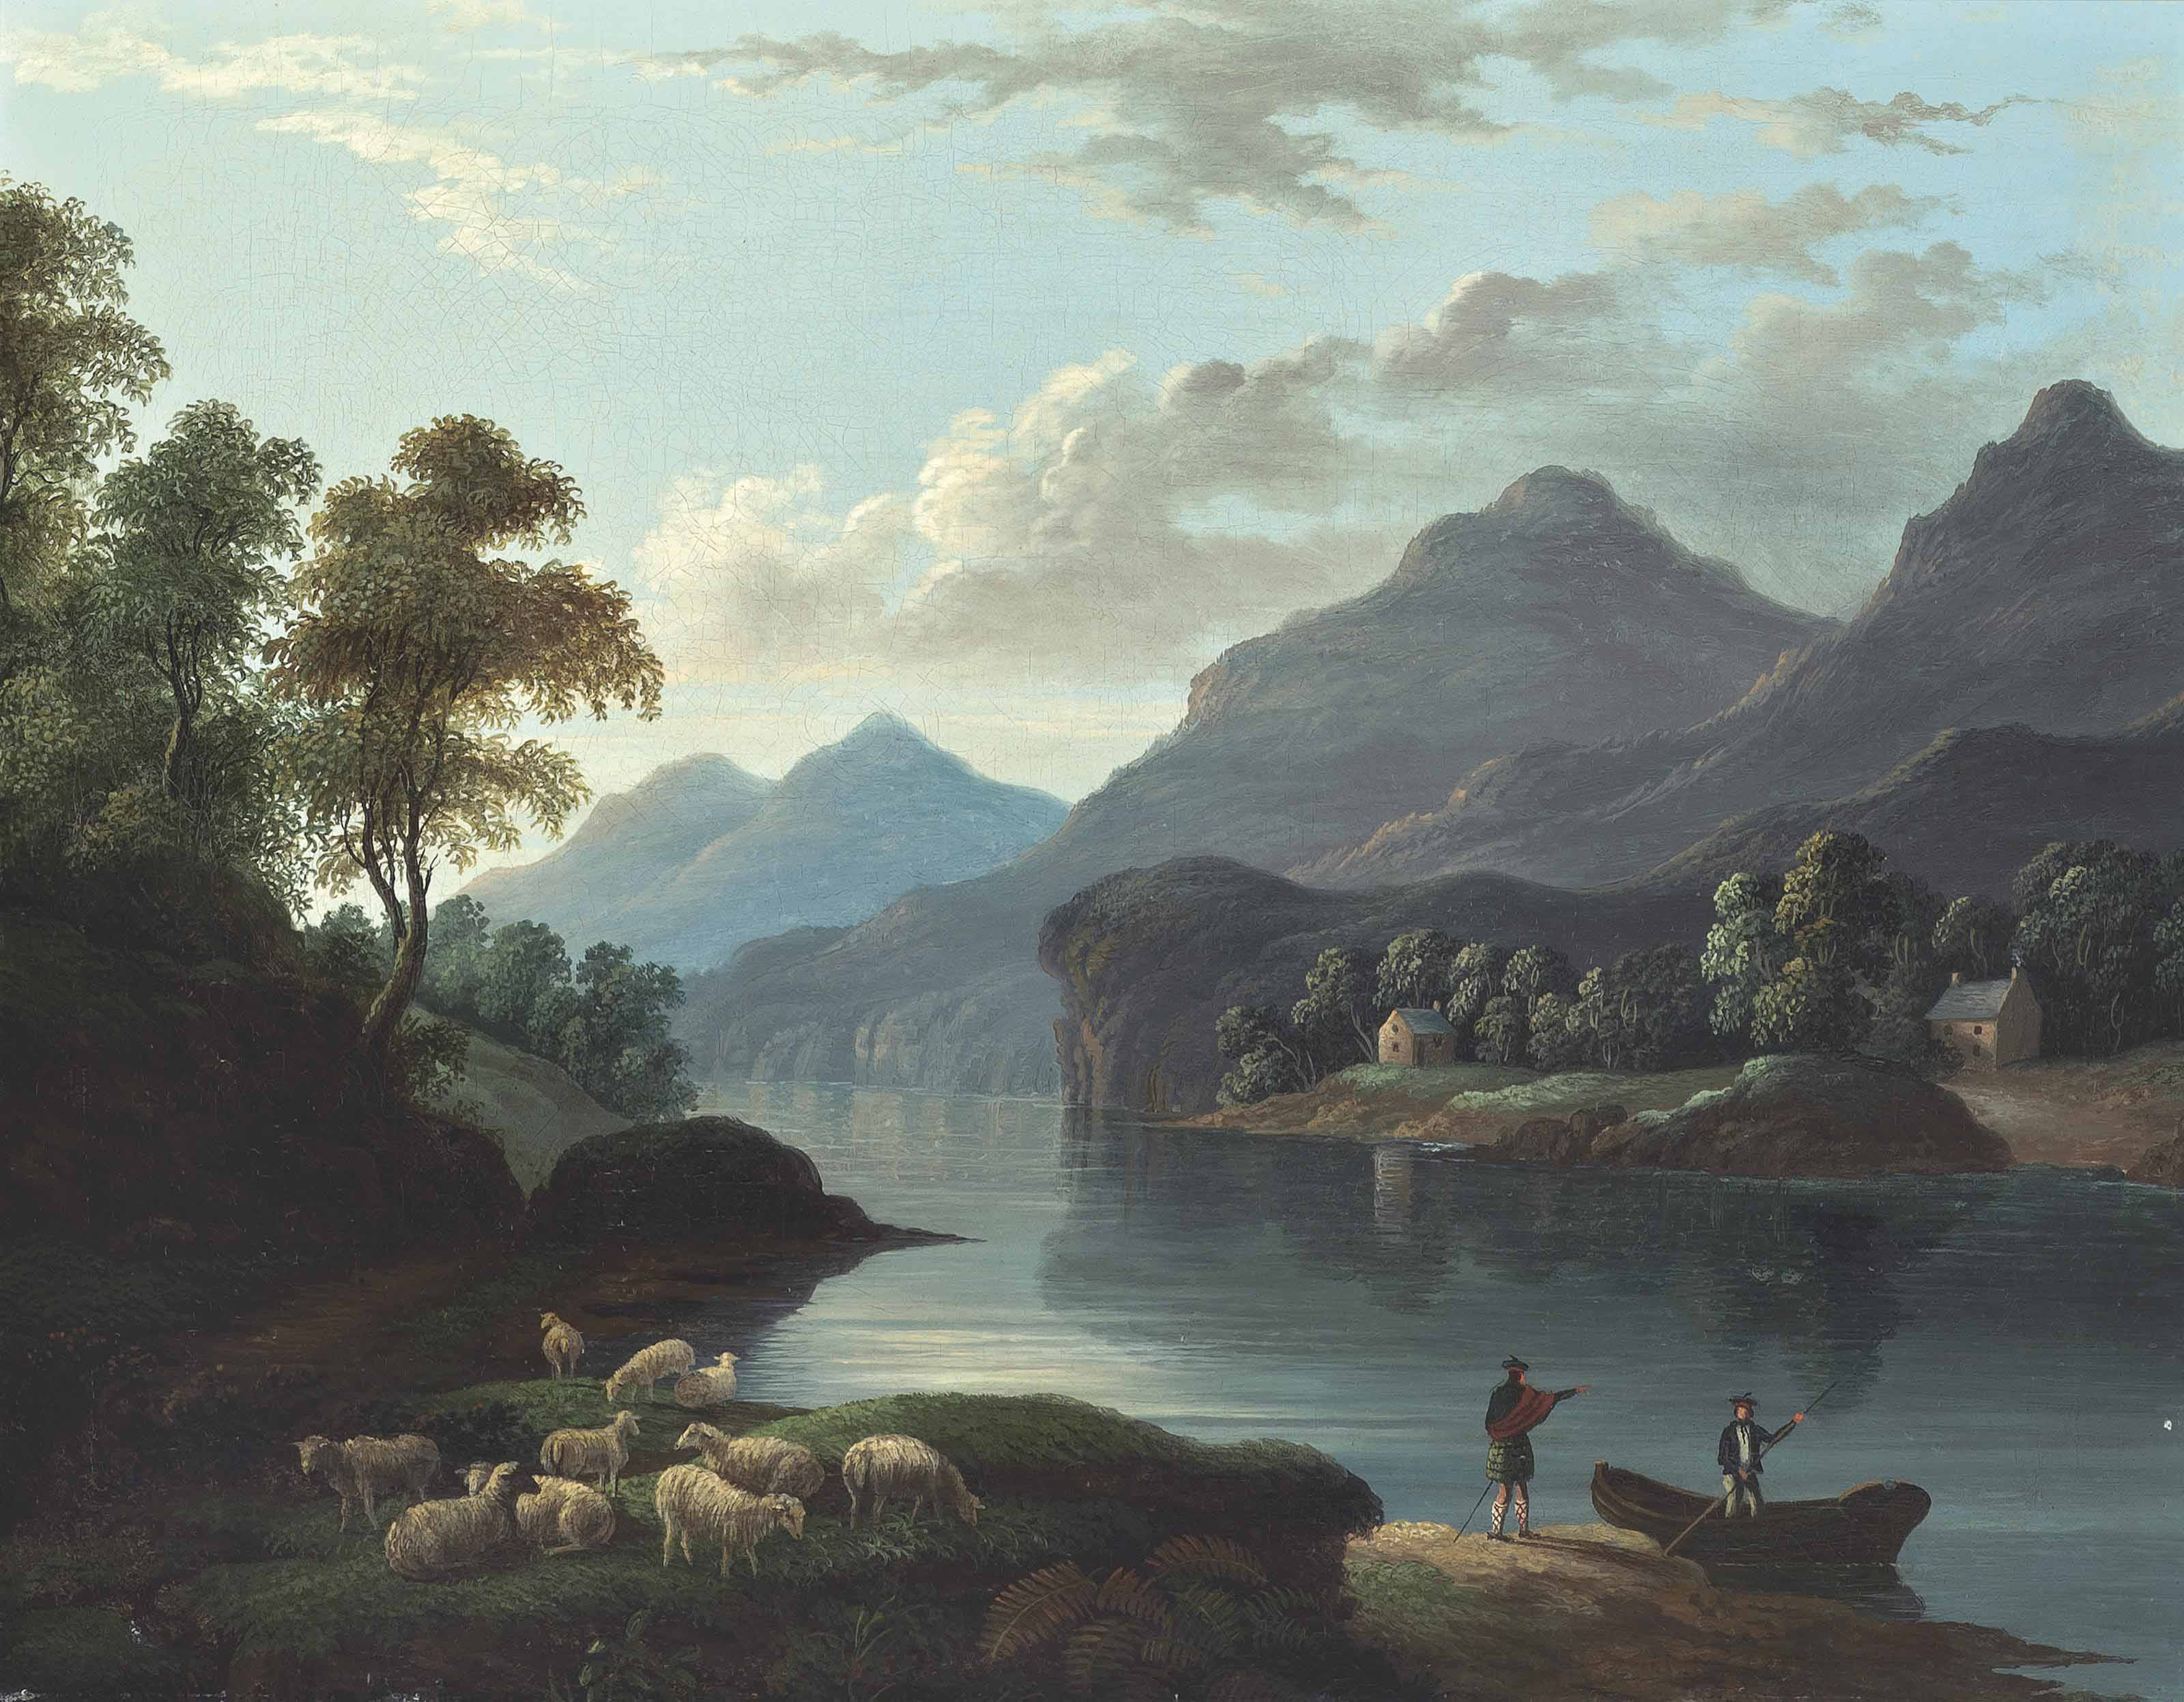 Cattle watering in a loch landscape; and Sheep and figures on the edge of a loch